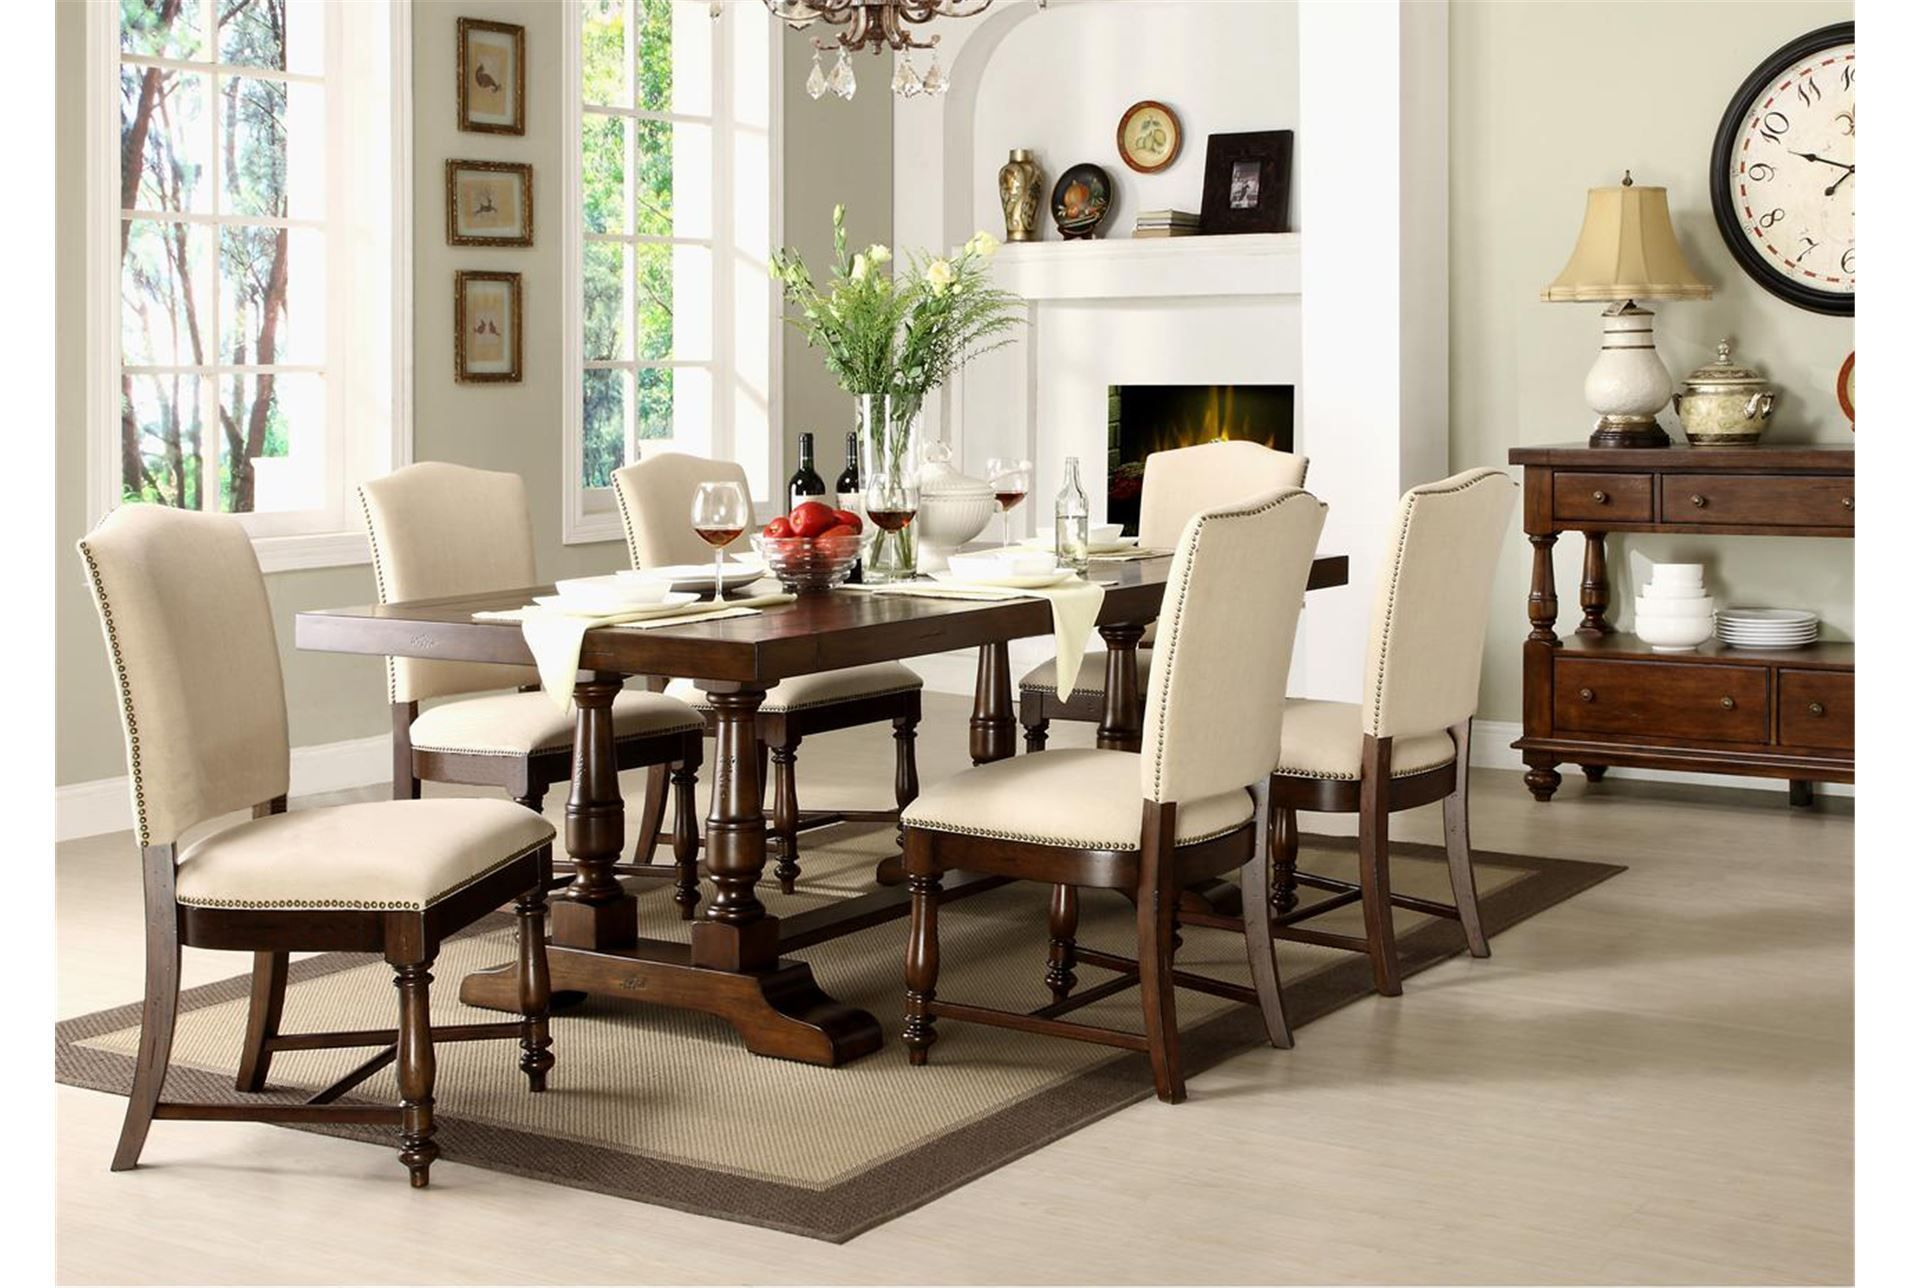 The Arlo Dining Set With Cream Upholstered Seats And Dark Wood